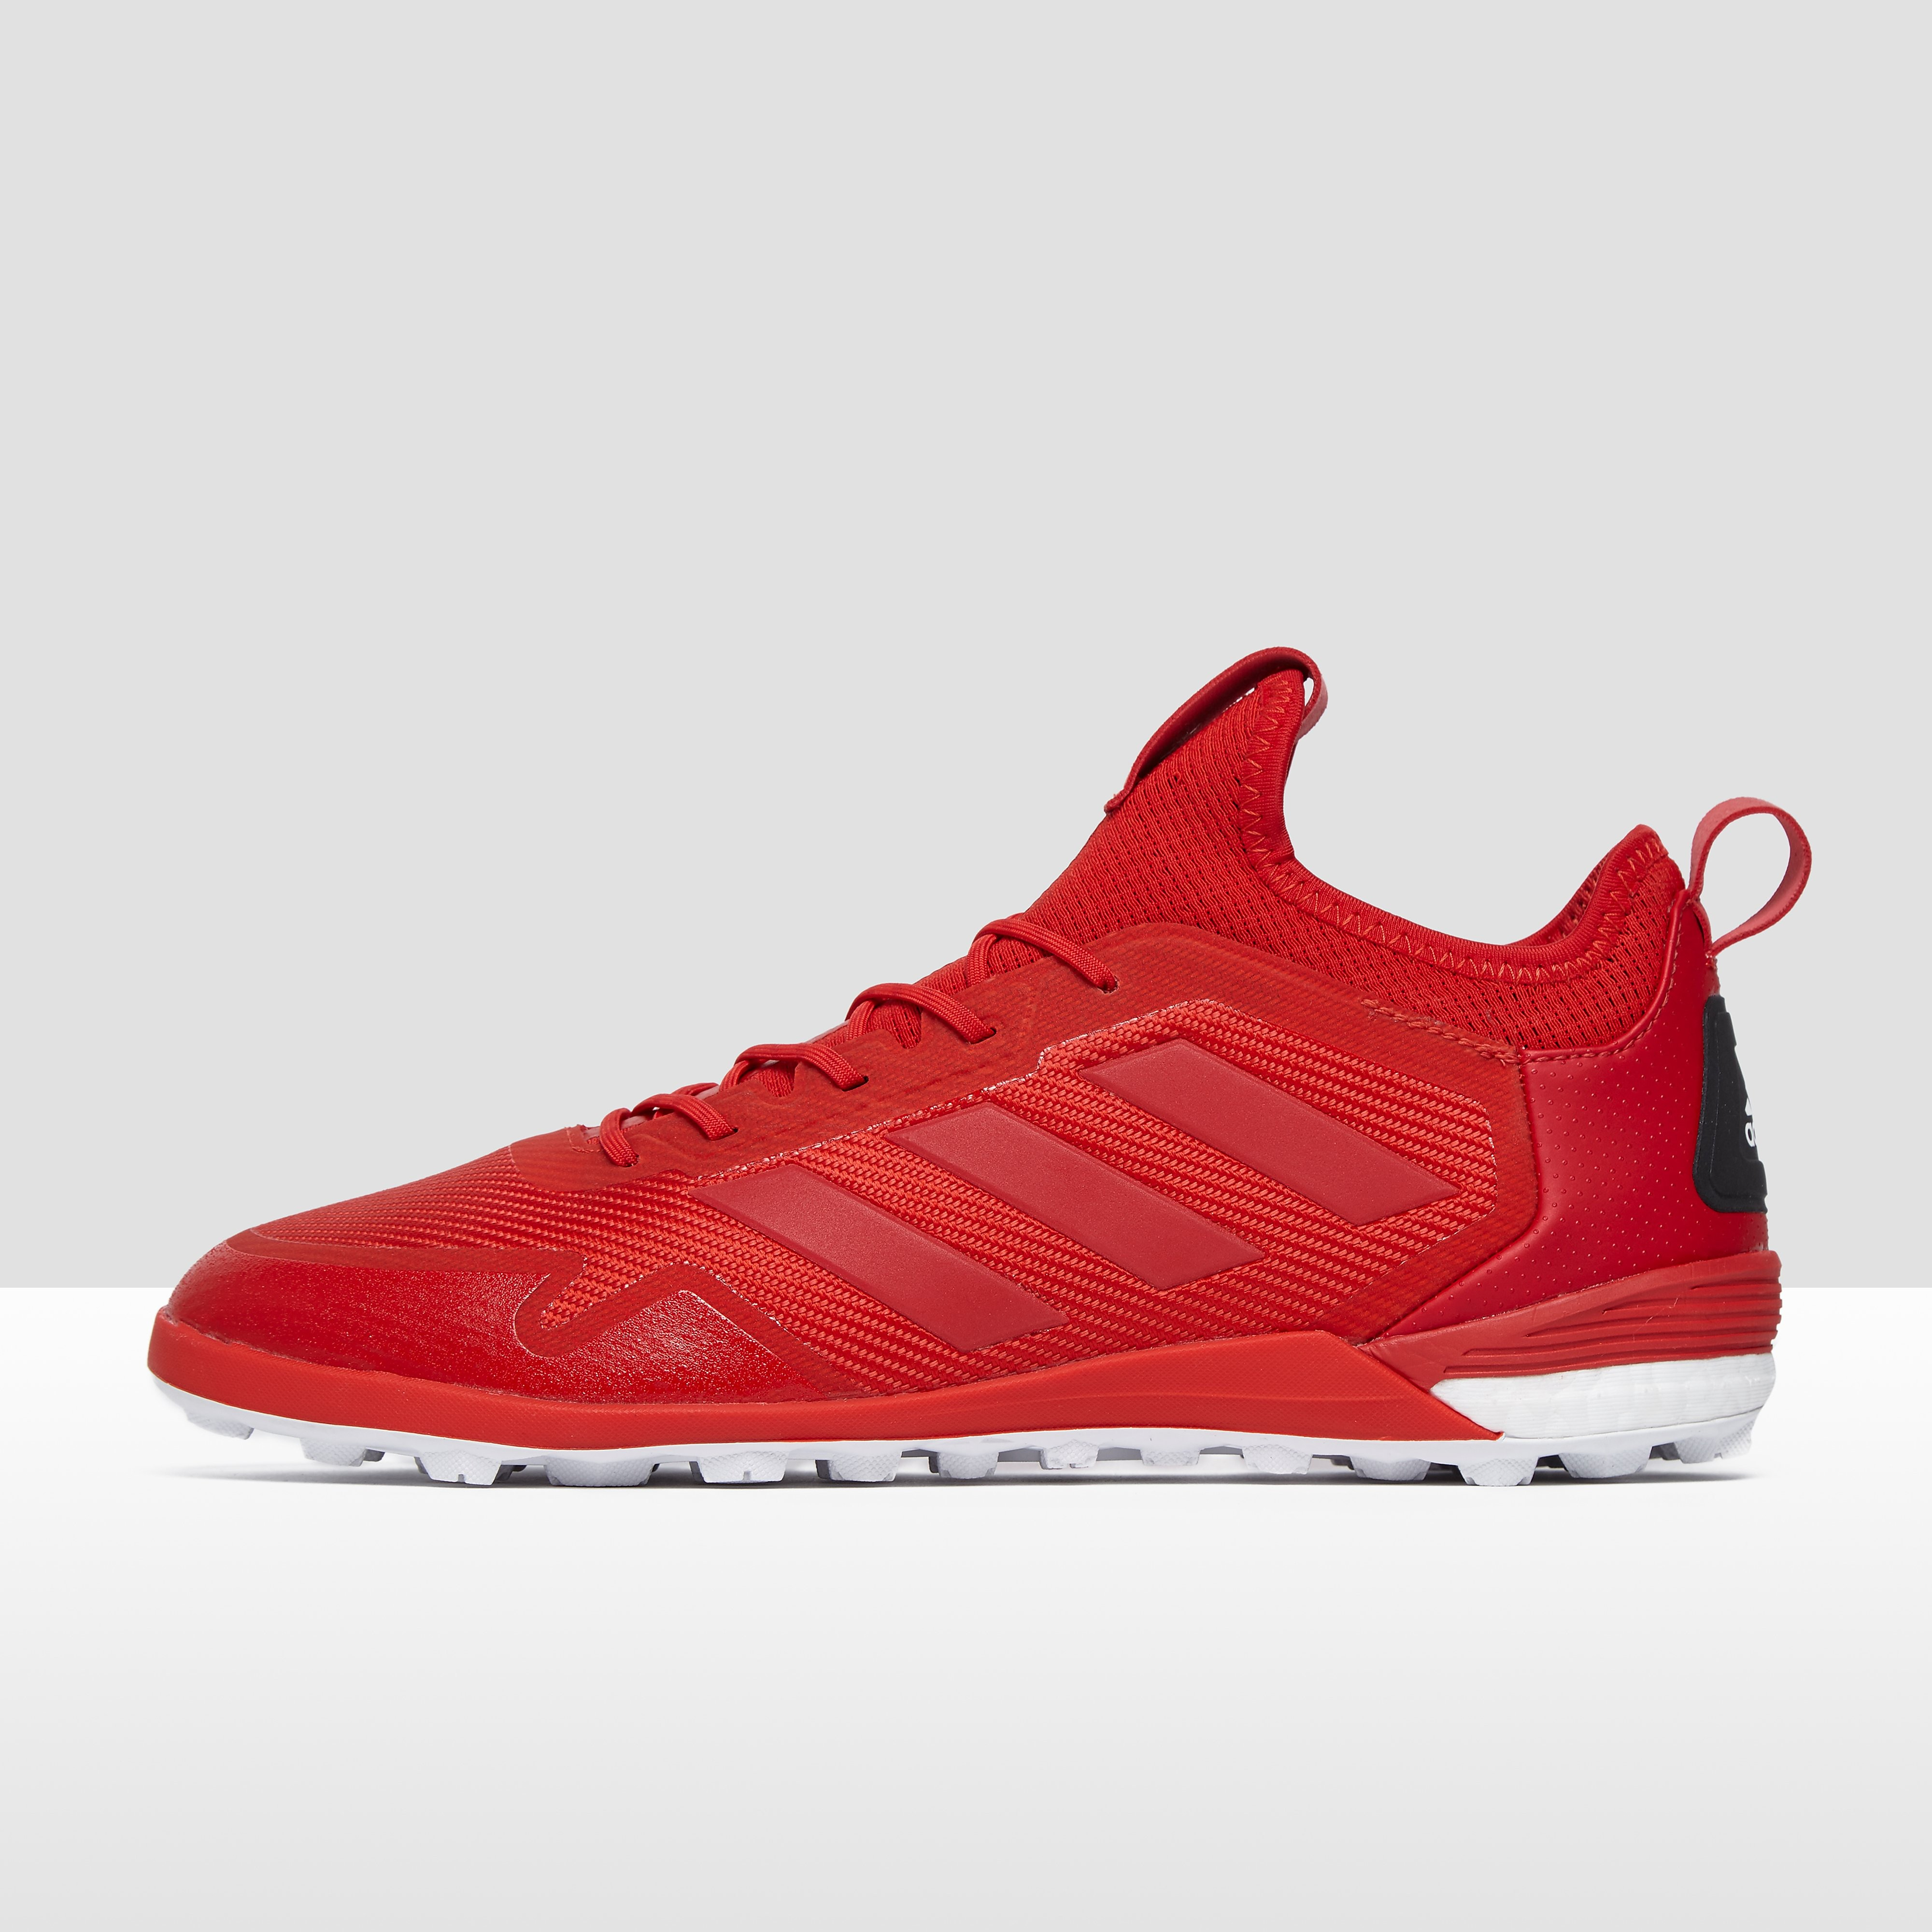 adidas Red Limit ACE Tango 17.1 Men's Turf Football Boots